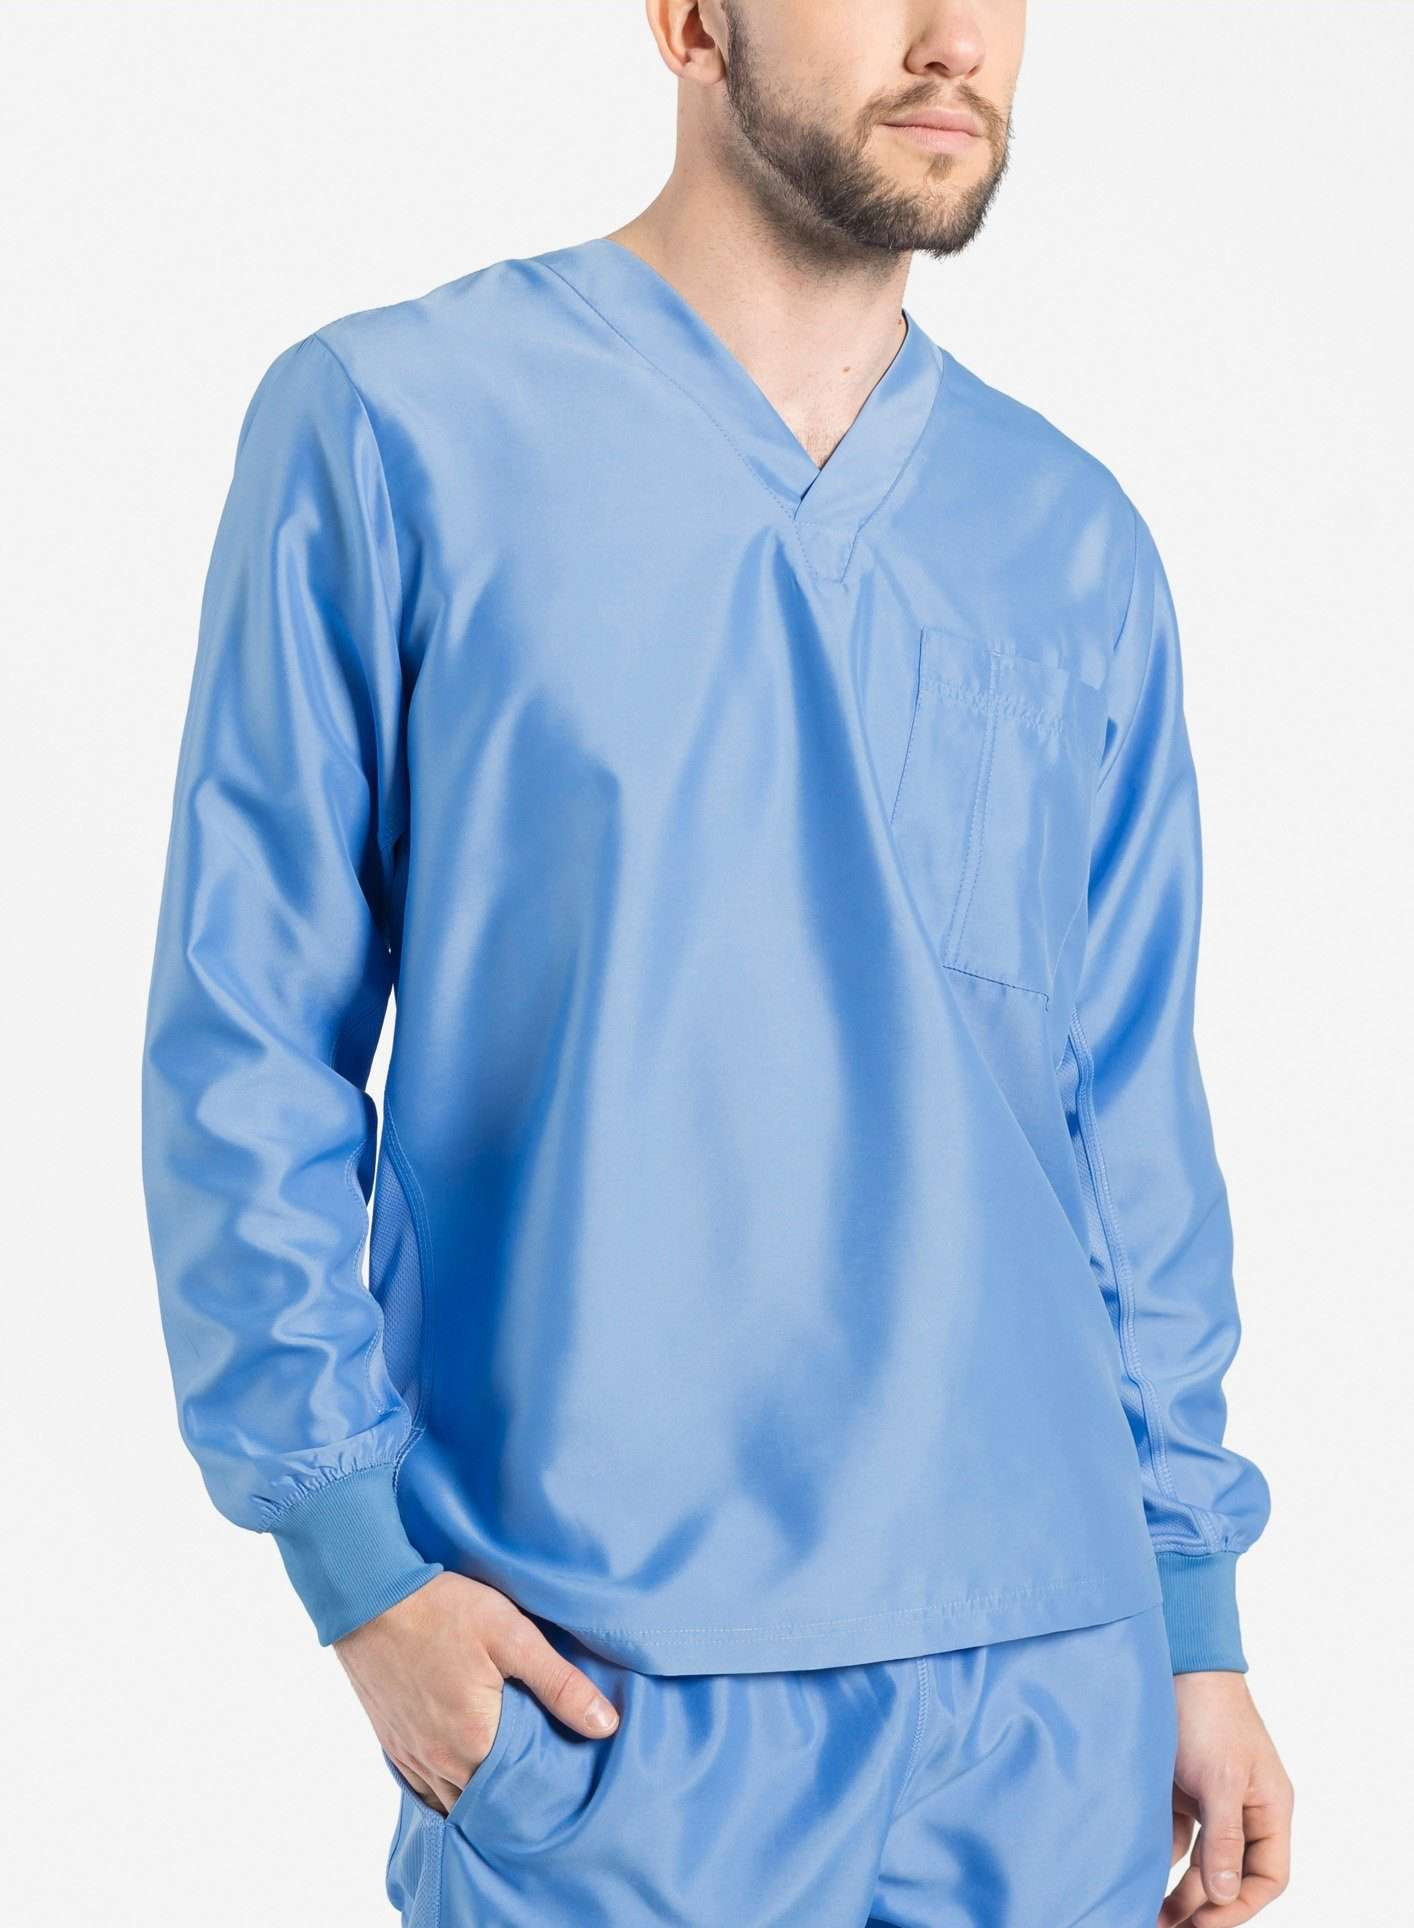 mens Elements long sleeve one pocket scrub top ceil blue